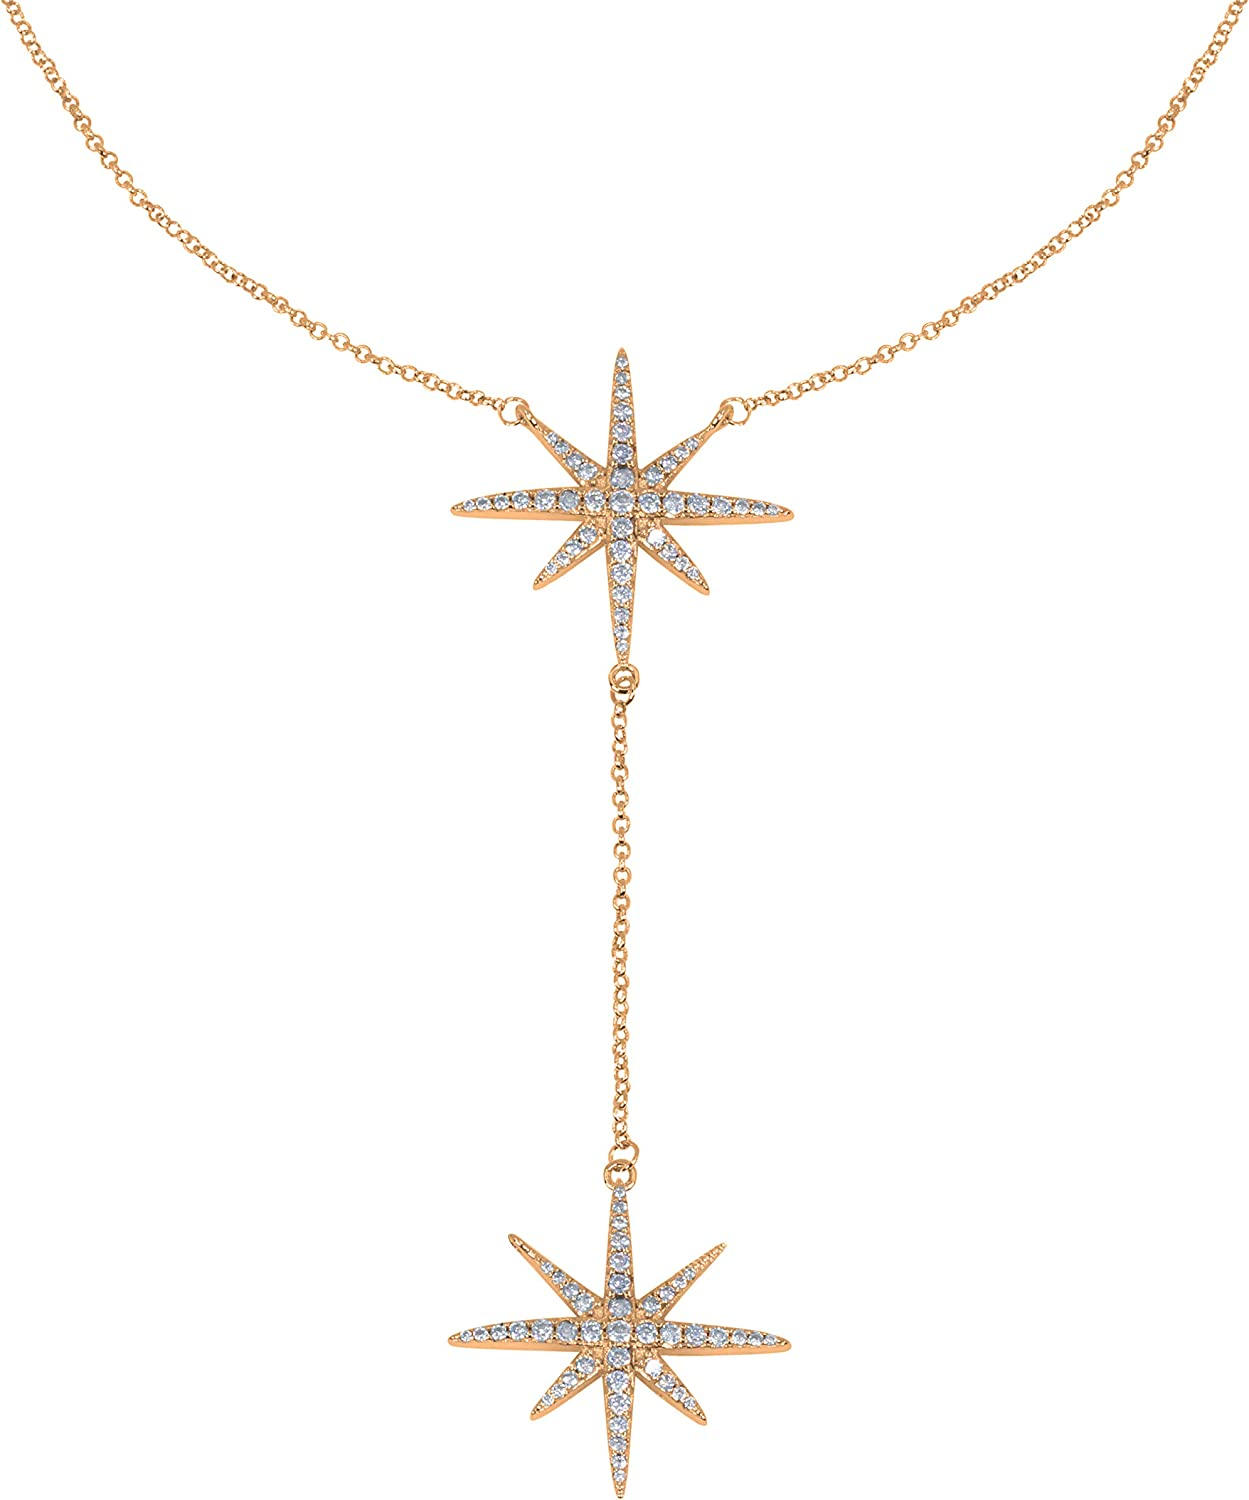 Savlano 14K Gold Plated Cubic Zirconia Round Cut Starburst 18 Inches Pendant Chain Necklace for Women & Girls